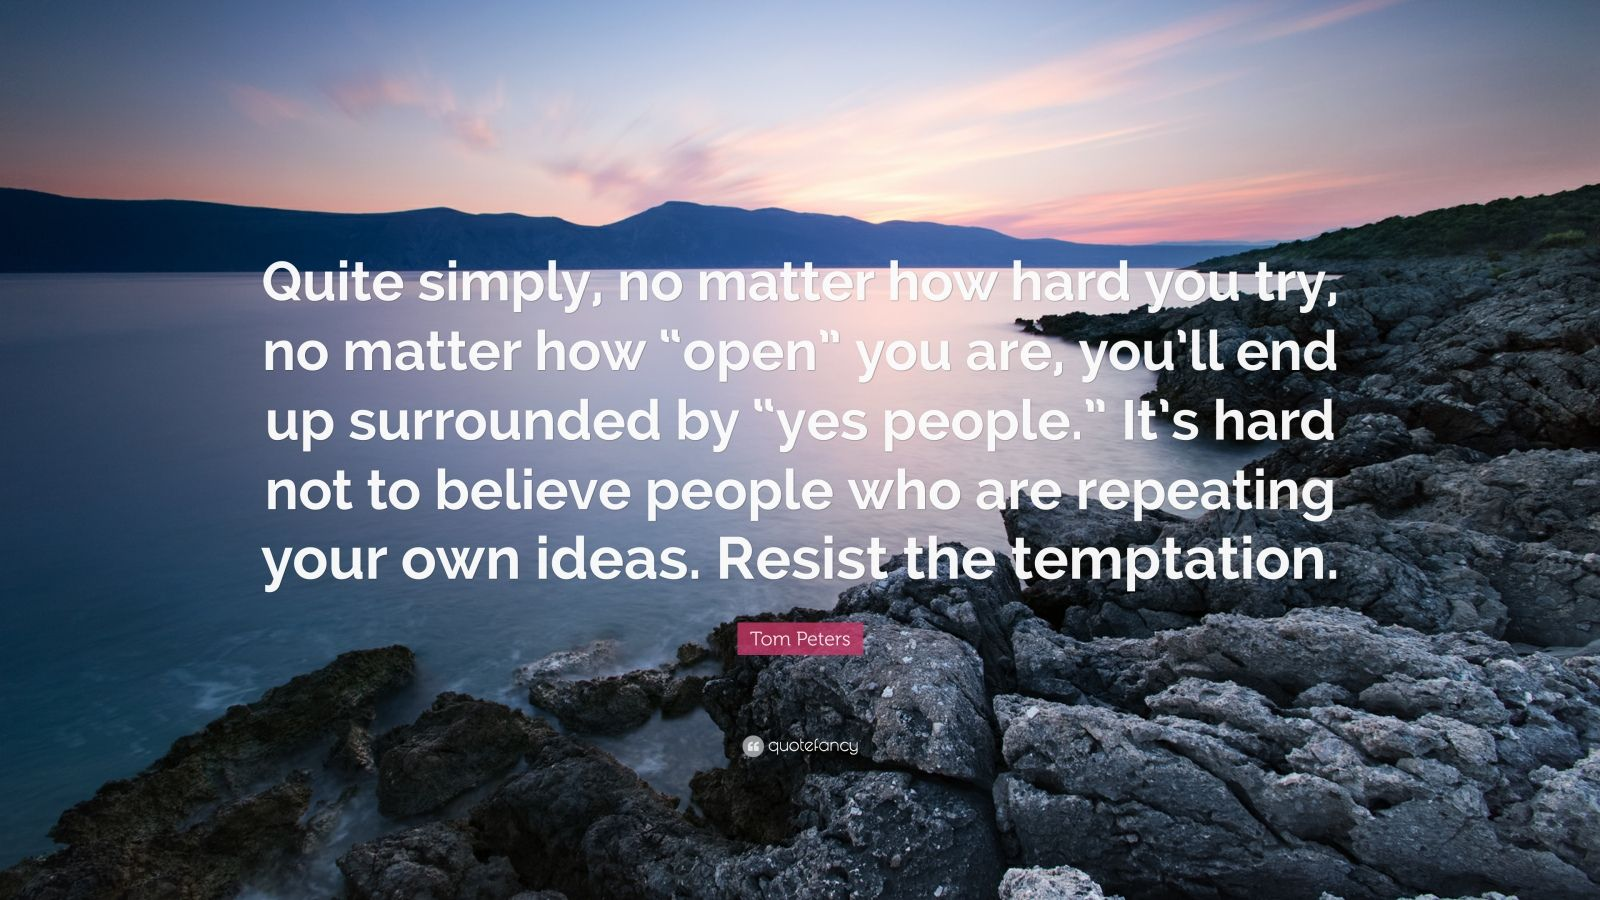 "Tom Peters Quote: ""Quite simply, no matter how hard you try, no matter how ""open"" you are, you'll end up surrounded by ""yes people."" It's hard not to believe people who are repeating your own ideas. Resist the temptation."""